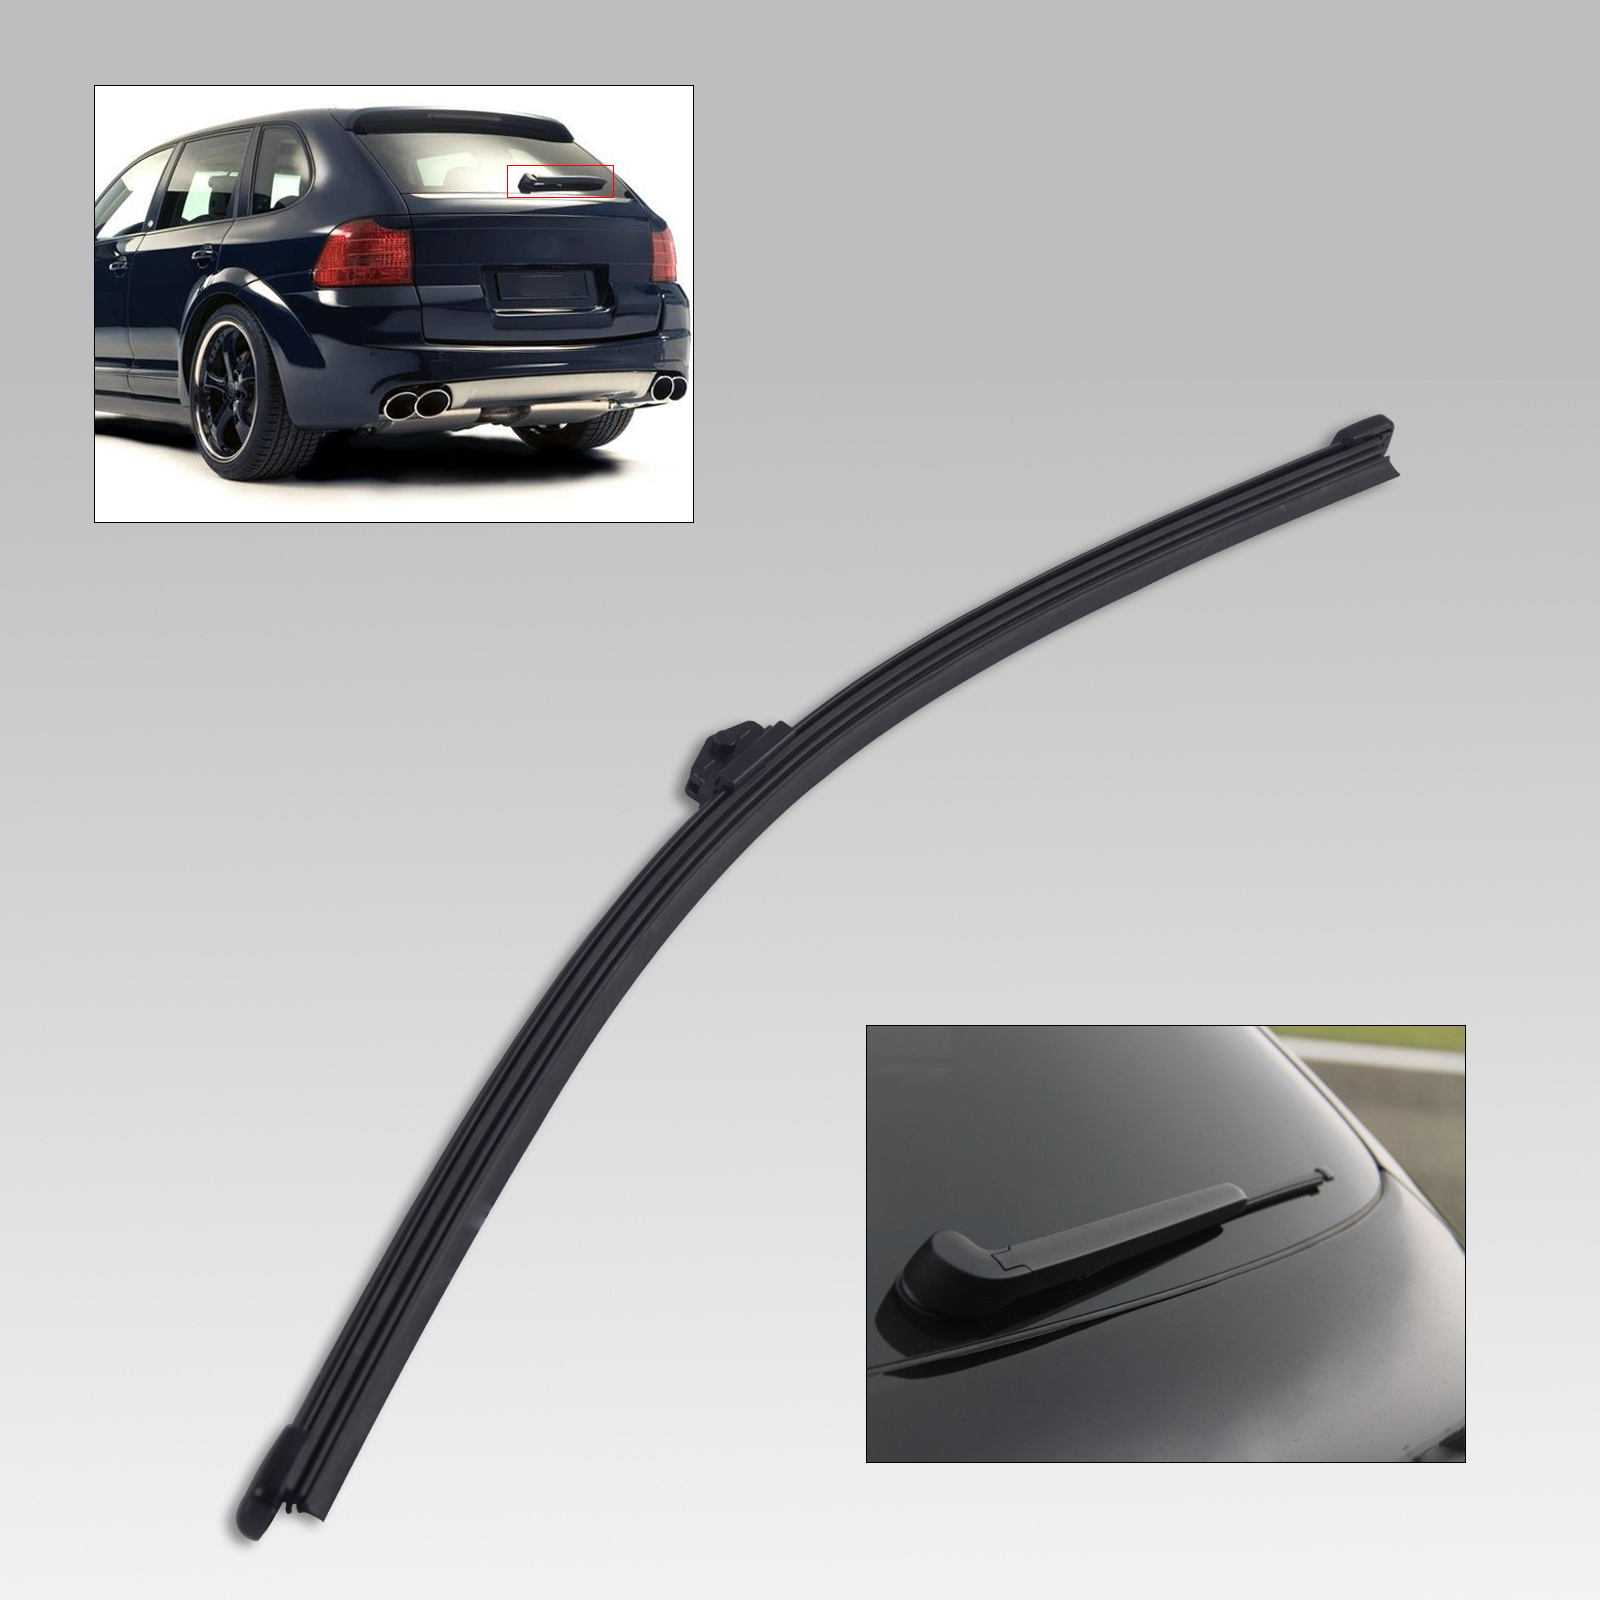 Dwcx 14 bracketless frameless rear window windshield wiper blade for porsche cayenne audi volkswagen touareg